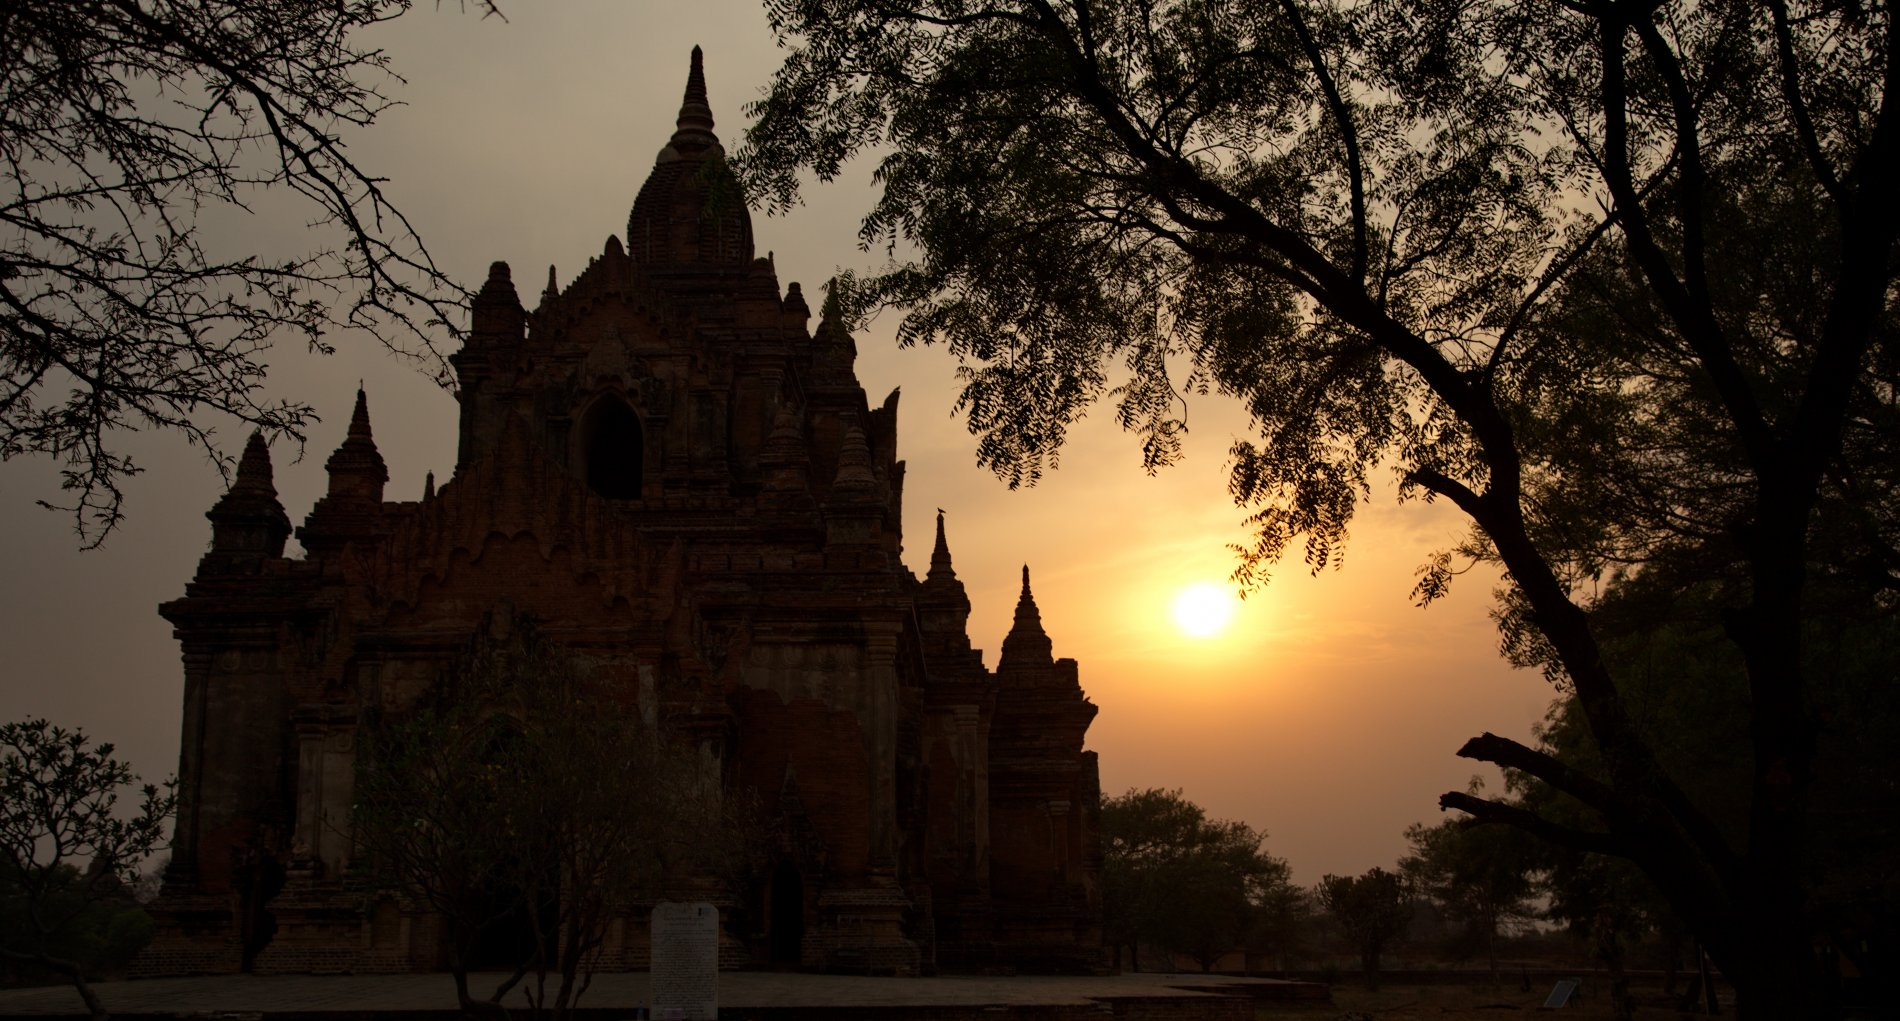 Bagan_022.jpg-commment